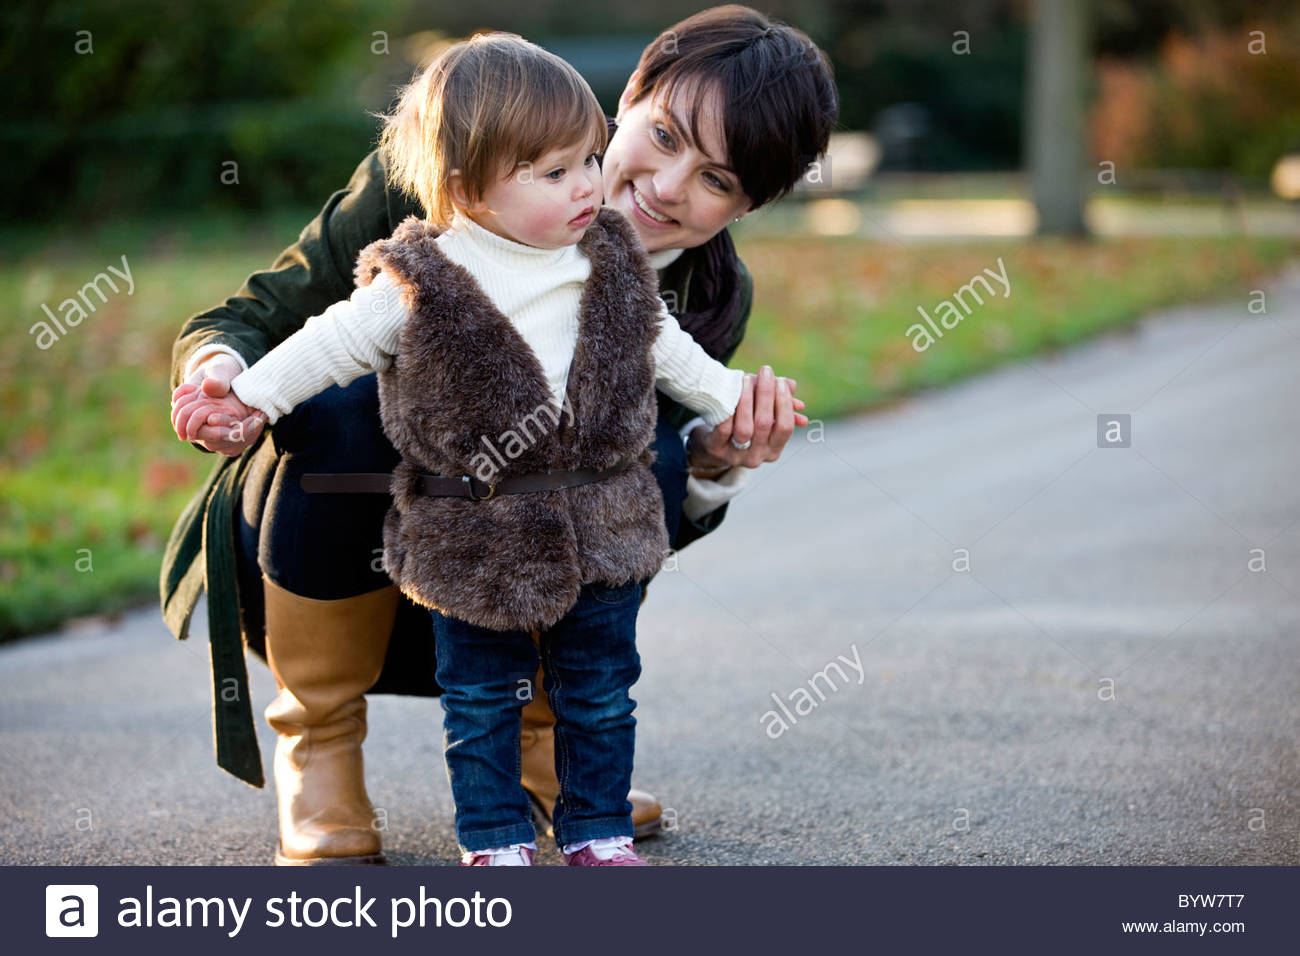 A mother helping her daughter stand in the park - Stock Image